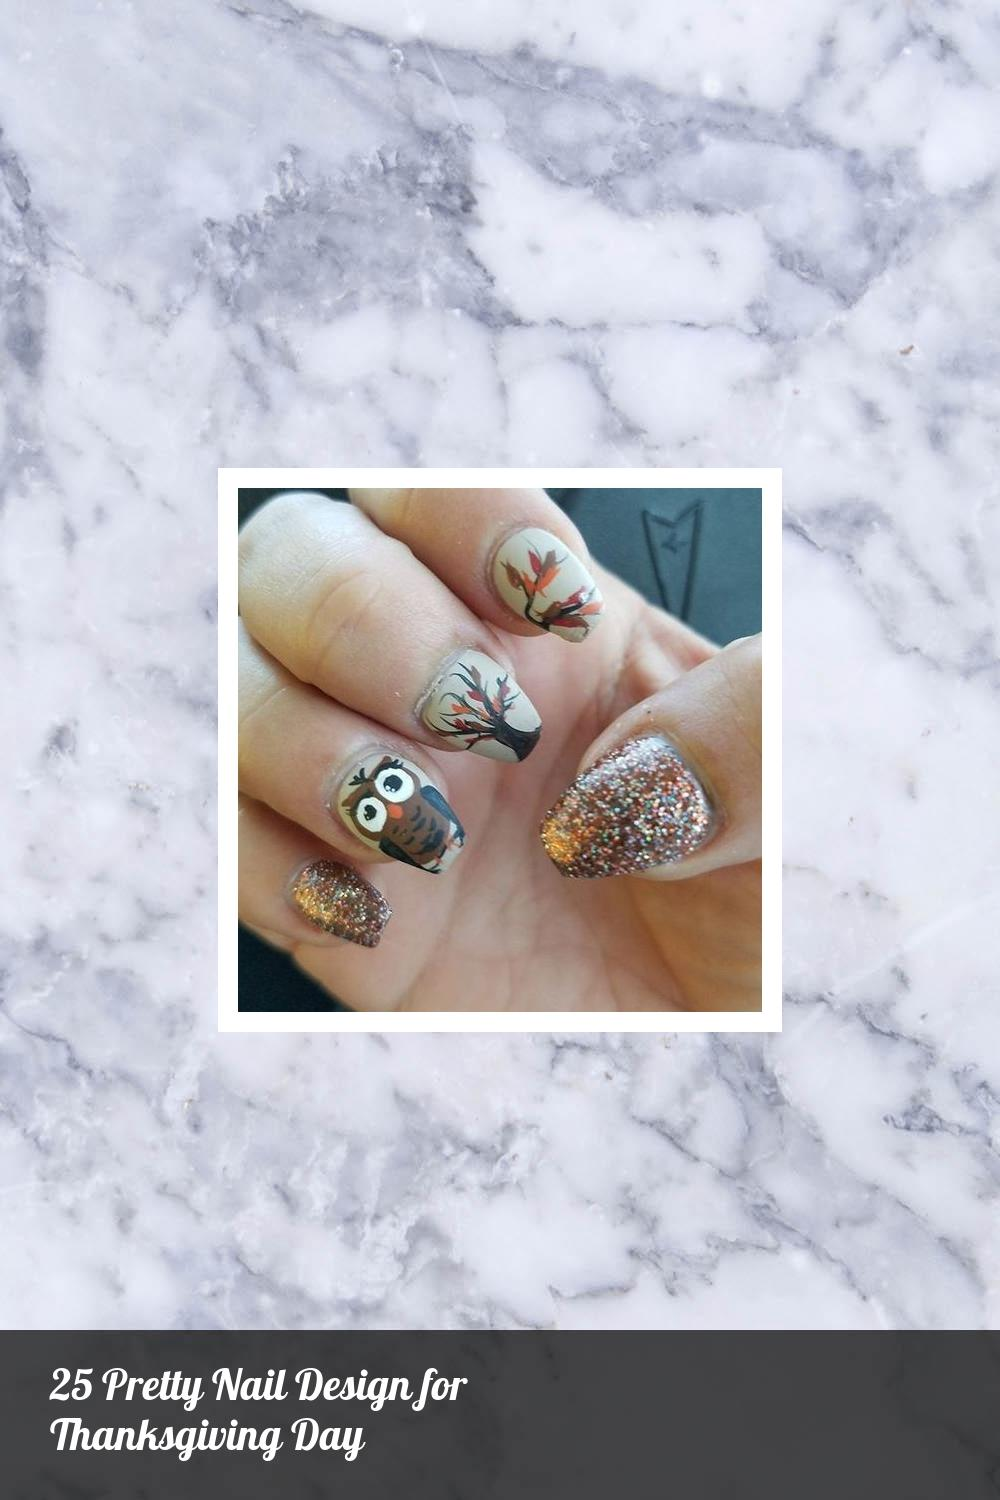 25 Pretty Nail Design for Thanksgiving Day 24